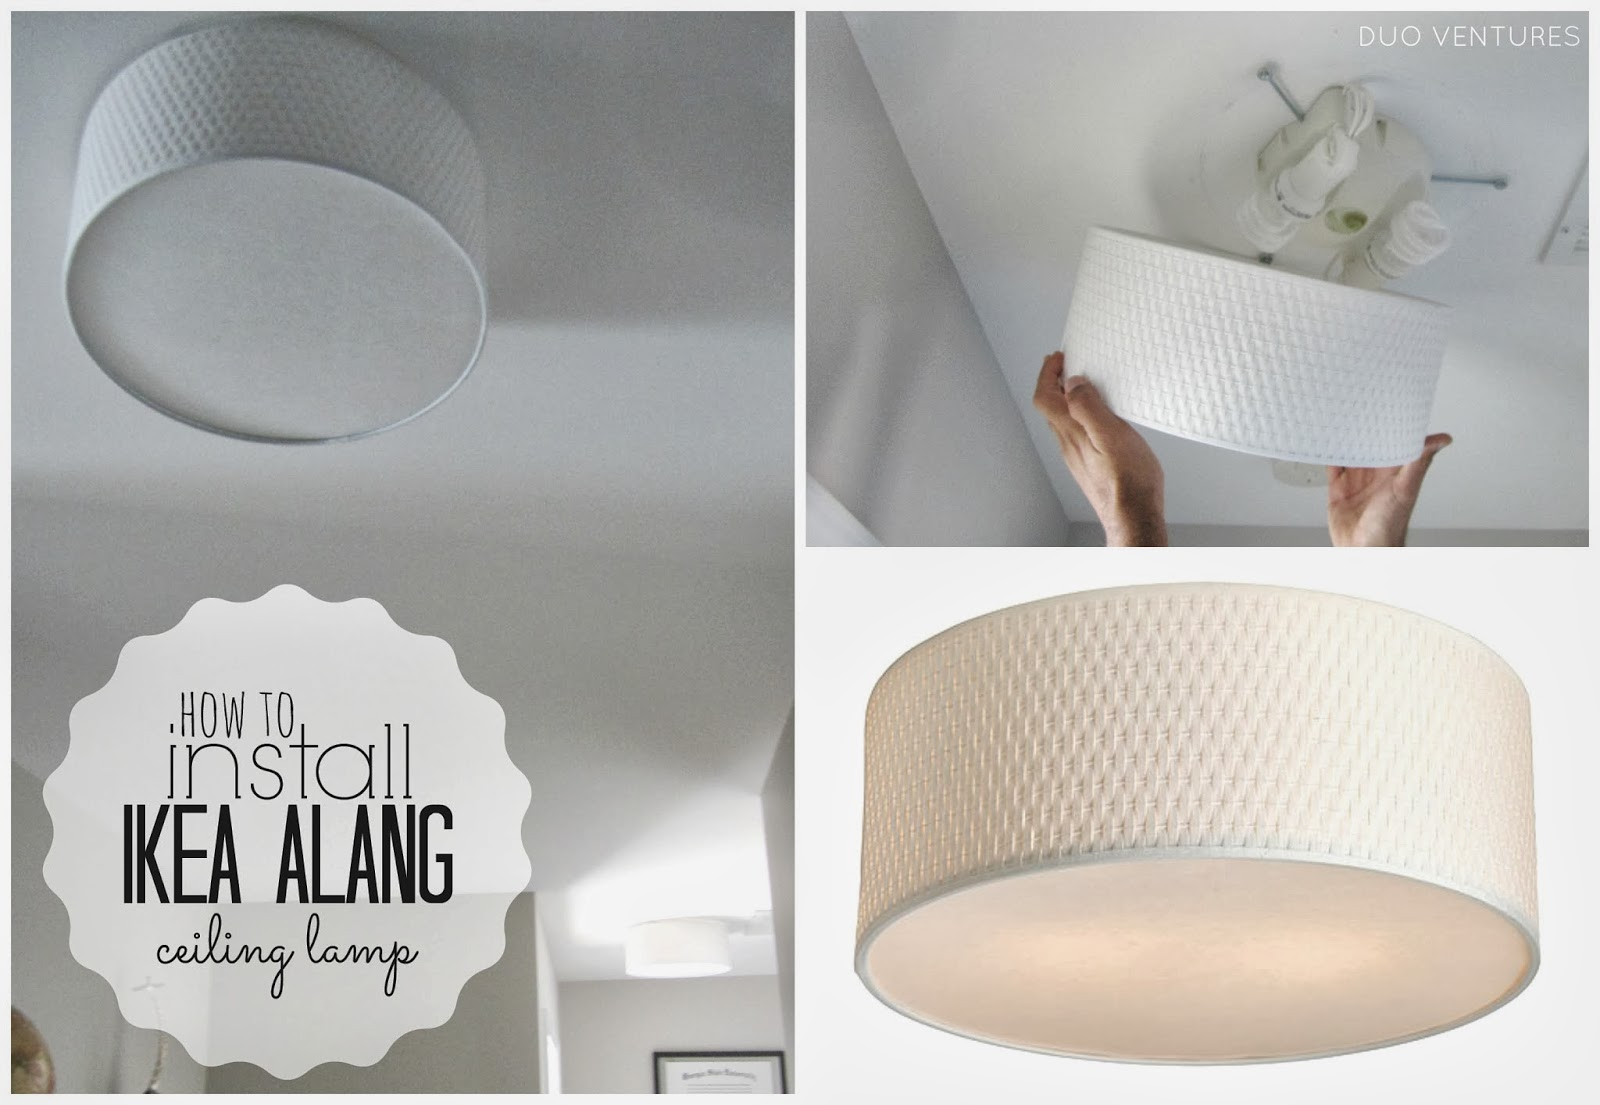 Duo ventures how to install ikea alang ceiling lamp how to install ikea alang ceiling lamp mozeypictures Gallery